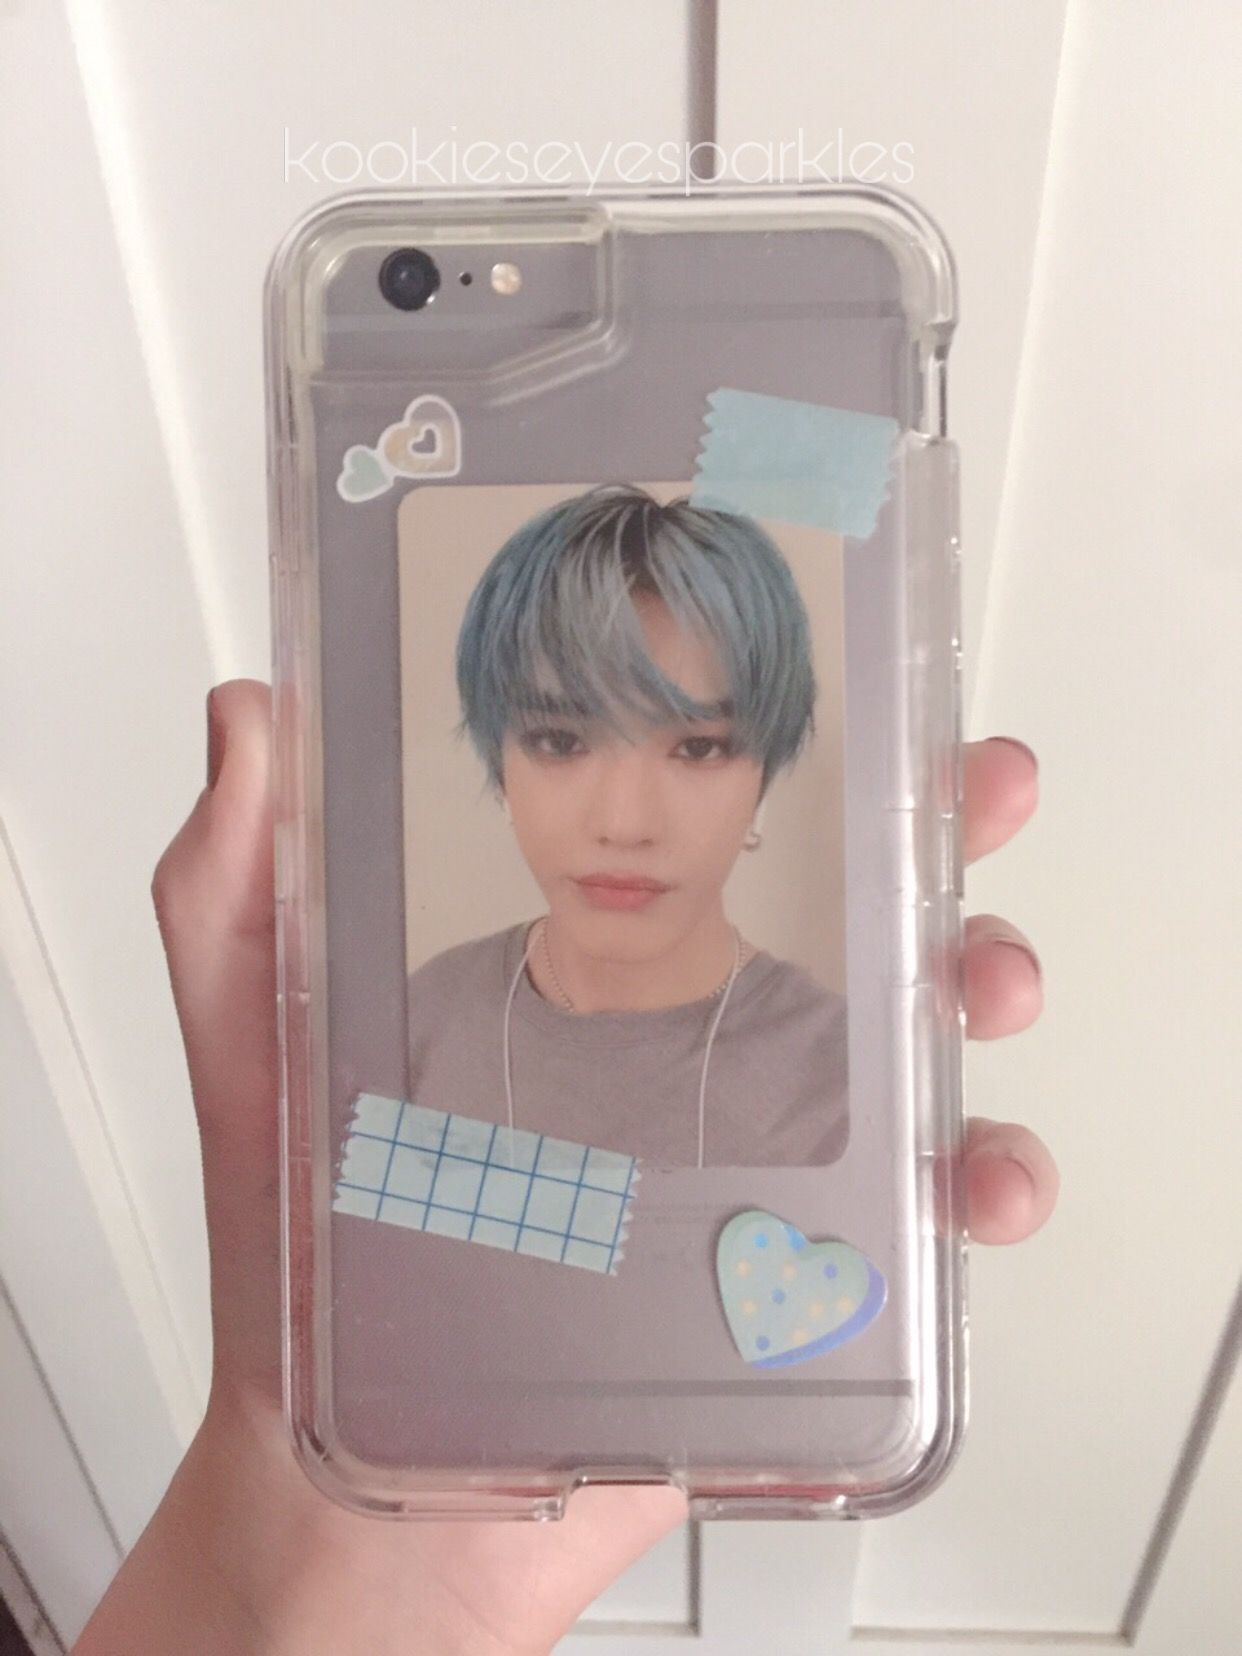 Kpop nct 127 taeyong phonecase aesthetic collection | Kpop ...